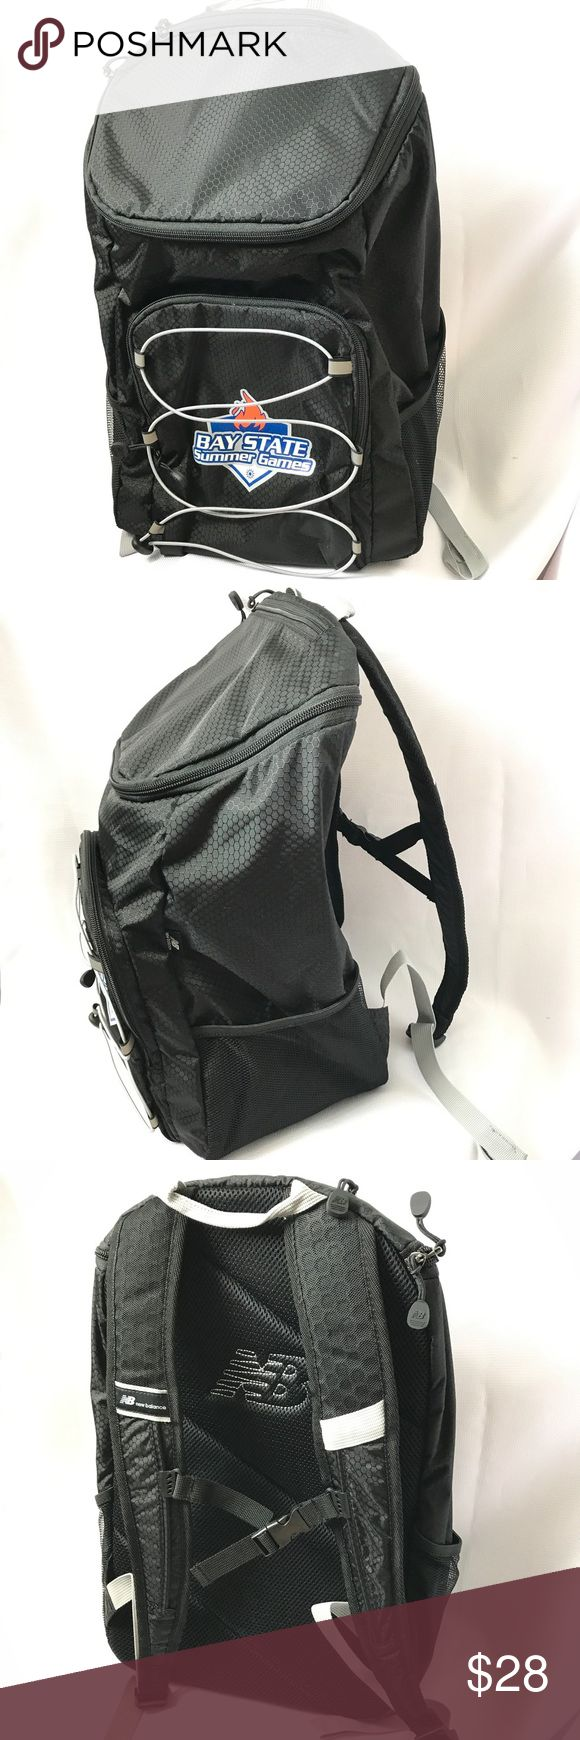 🆕 New Balance Sports Tech Backpack Brand New Sports Tech Backpack by New Balance. Color Black. For Kids and Adults New Balance Bags Backpacks